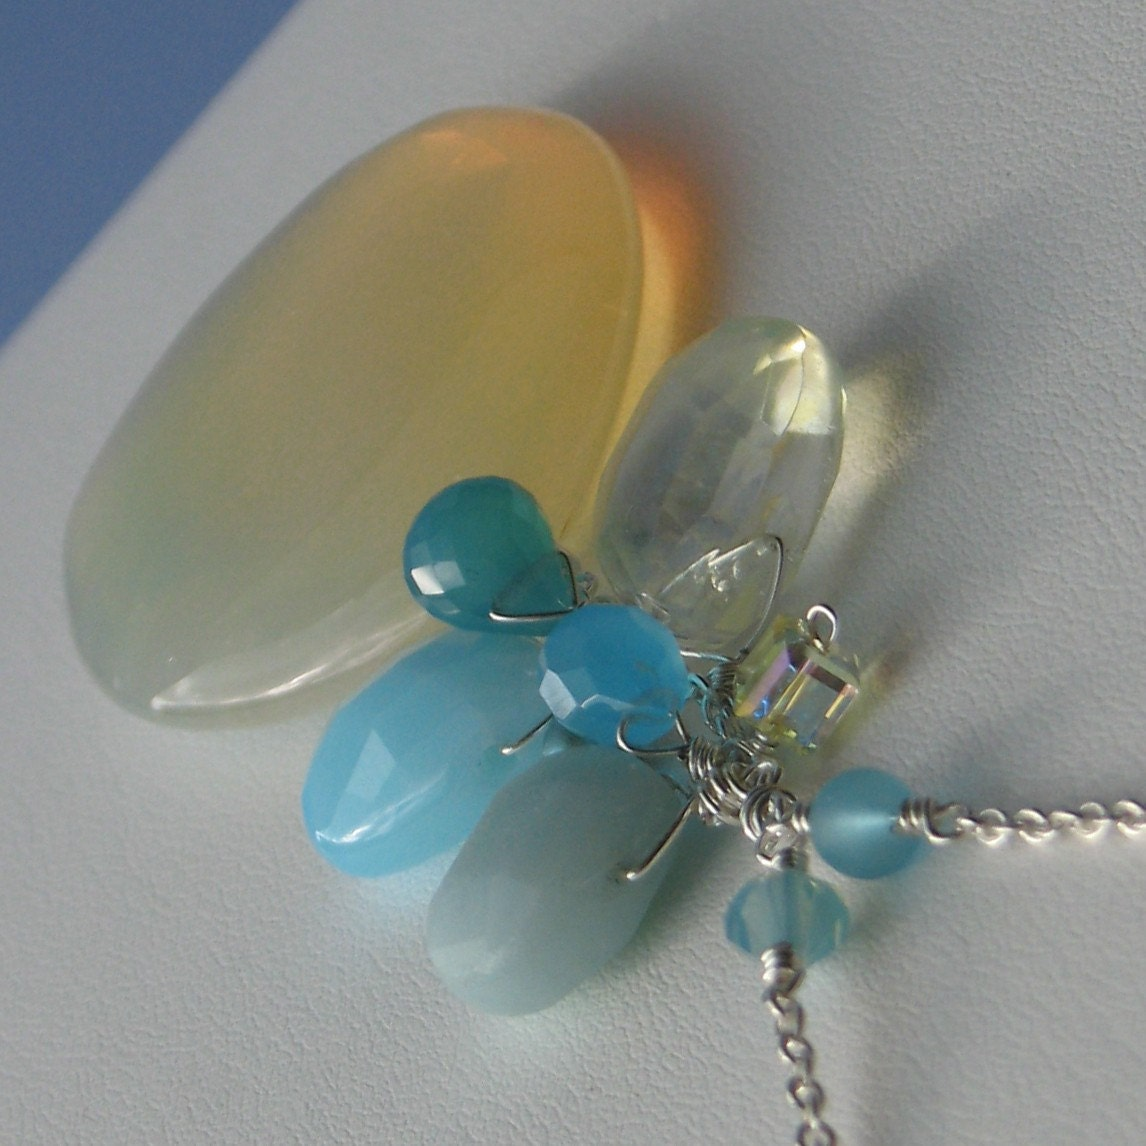 Beach Beauty, Sea Blue Chalcedony, Lemon Quartz, Swarovski Crystals, Teal Freshwater Pearls, Sterling Silver Necklace